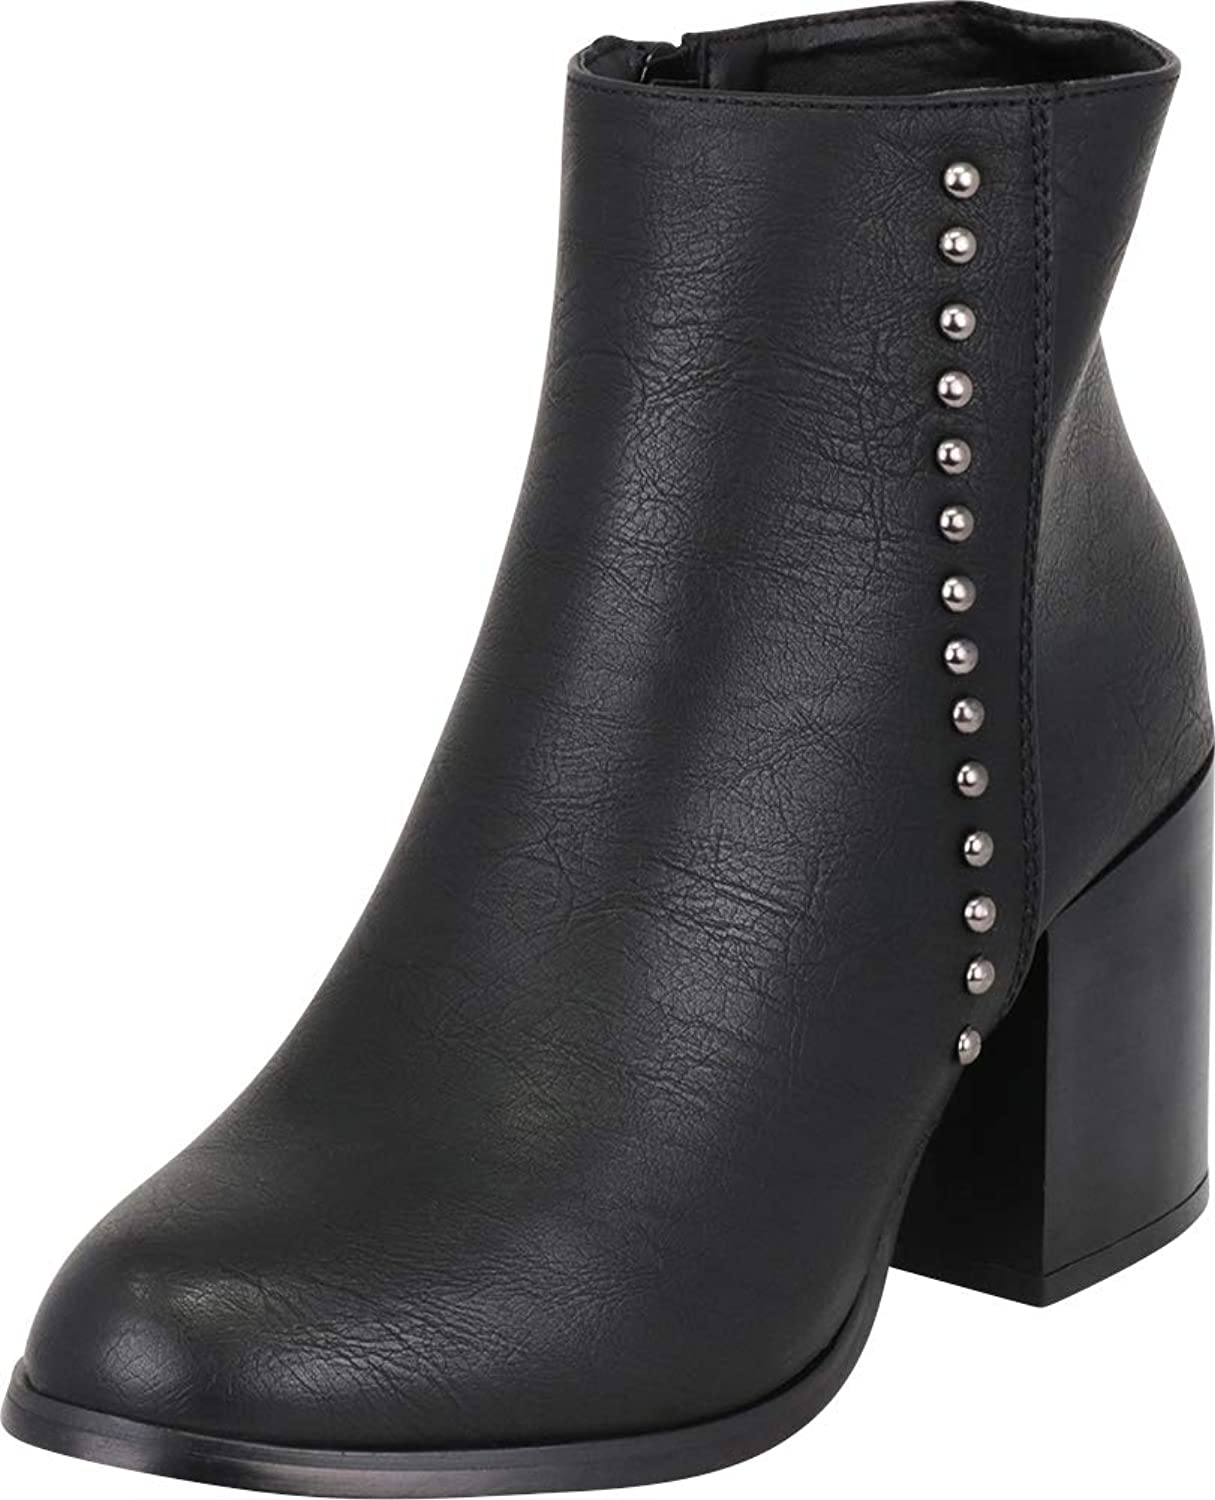 Cambridge Select Women's Western Distressed Dome Studded Chunky Heel Ankle Bootie